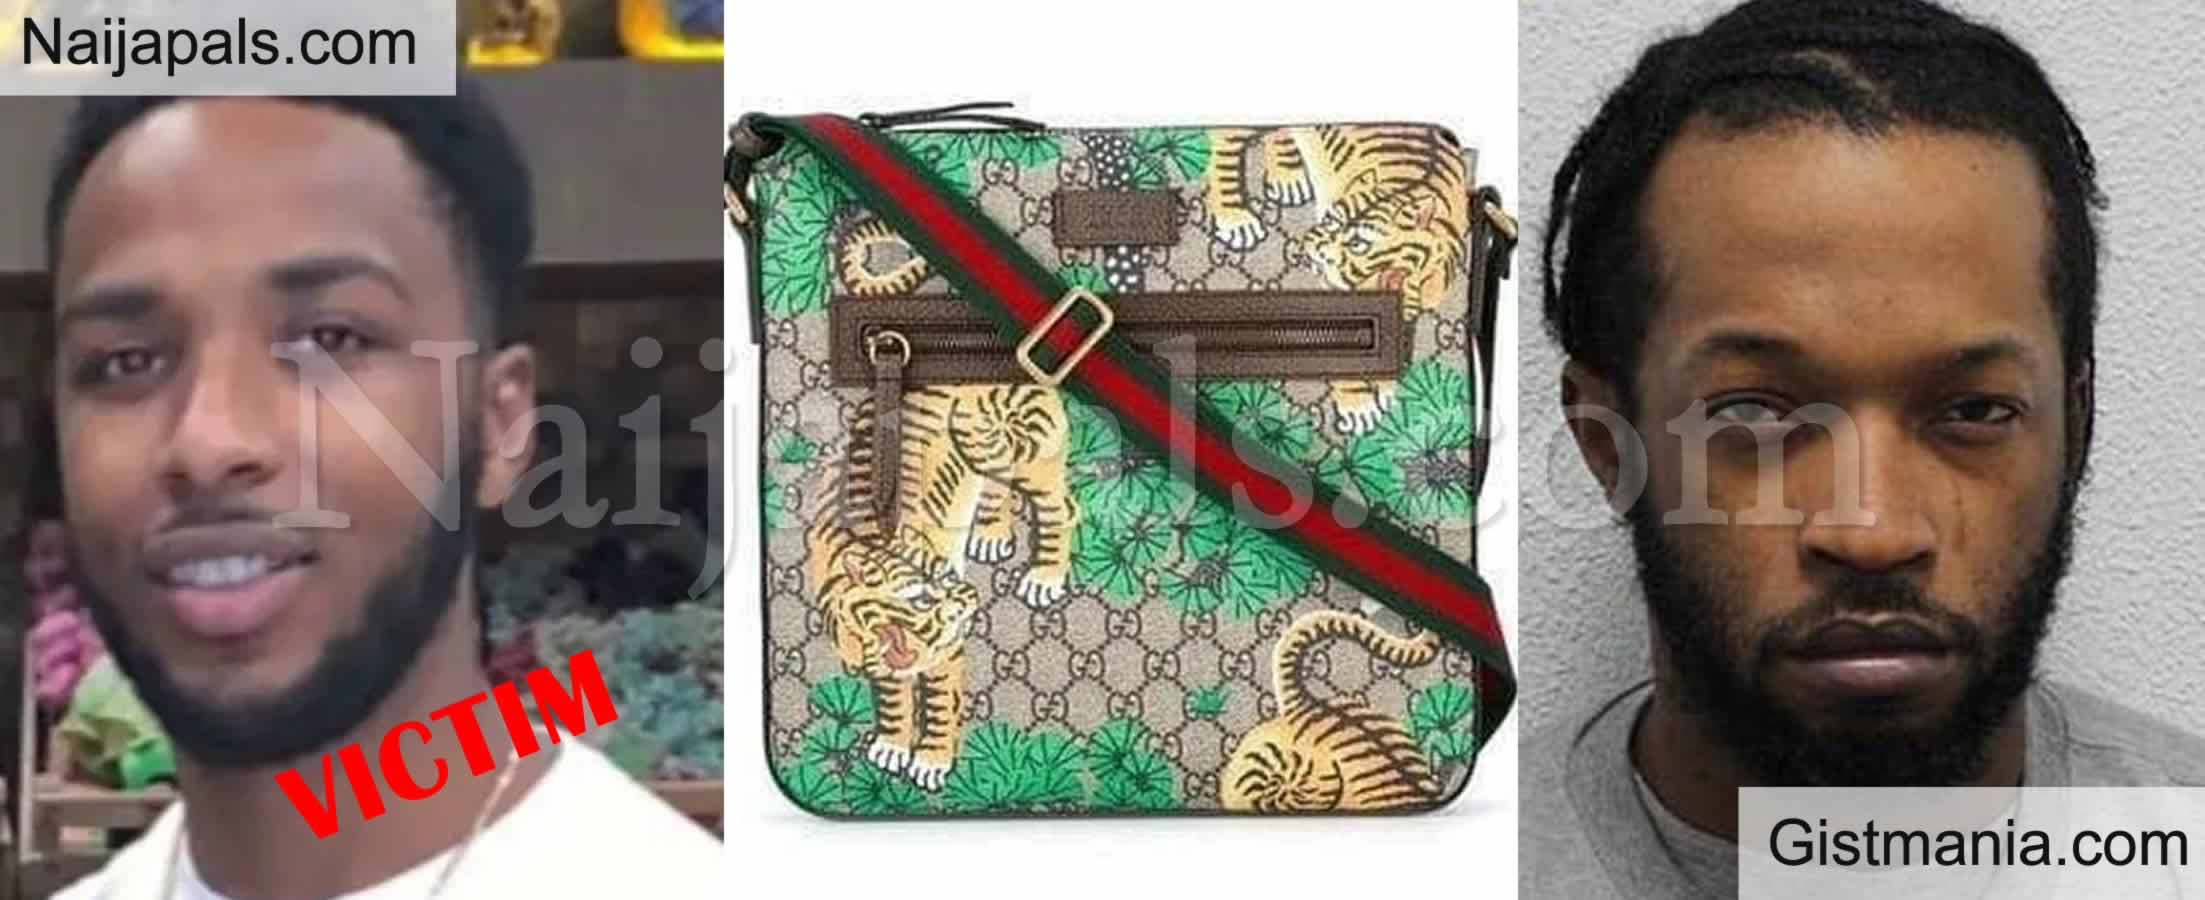 Nigerian Man, Samuel Odupitan Stabs Hotel Worker To Death In UK Over Second-hand Gucci Bag - Gistmania